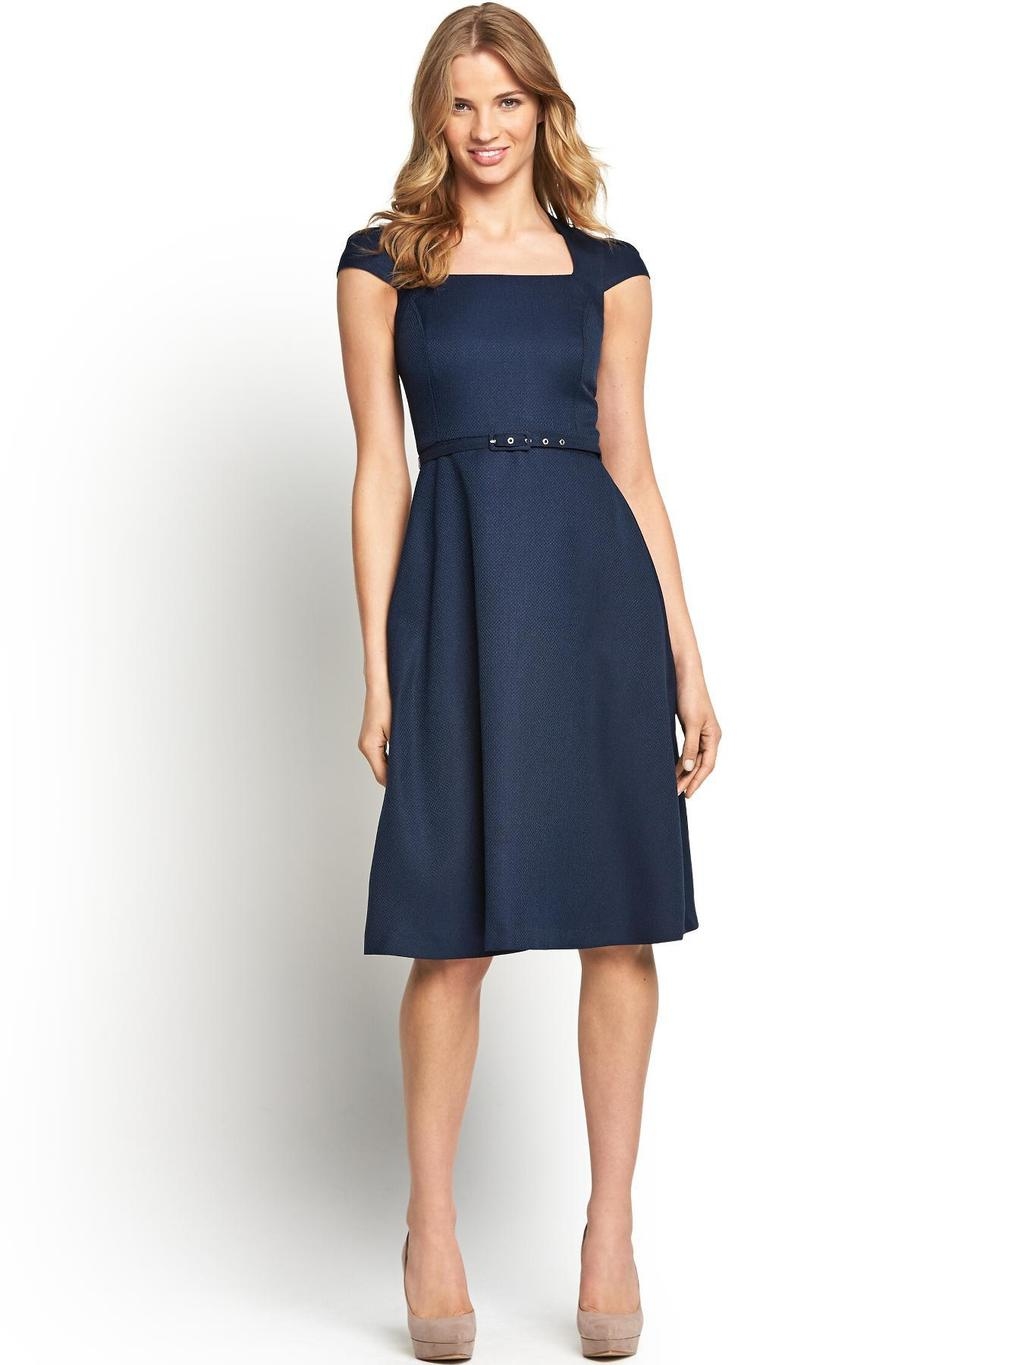 Petite Mix And Match Dress, Navy, Stone - sleeve style: capped; pattern: plain; waist detail: belted waist/tie at waist/drawstring; predominant colour: navy; occasions: evening, occasion; length: on the knee; fit: fitted at waist & bust; style: fit & flare; fibres: polyester/polyamide - 100%; hip detail: soft pleats at hip/draping at hip/flared at hip; sleeve length: short sleeve; neckline: low square neck; pattern type: fabric; texture group: other - light to midweight; season: s/s 2014